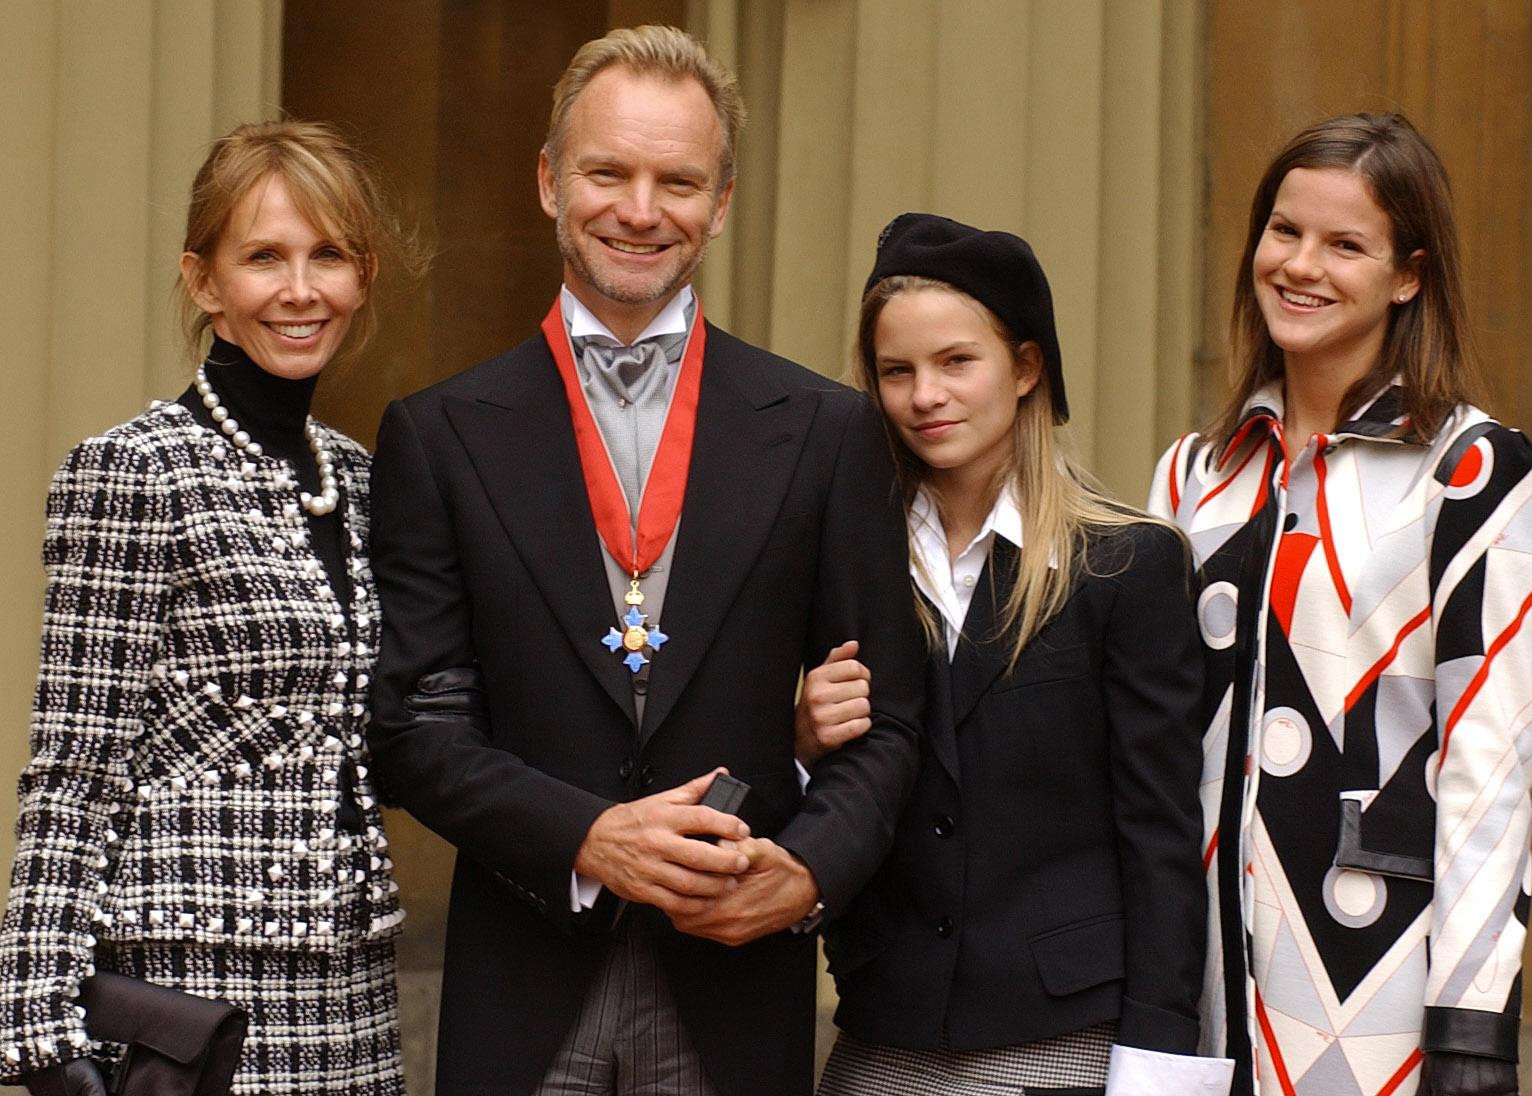 Sting with his wife Trudie Styler, and daughters C